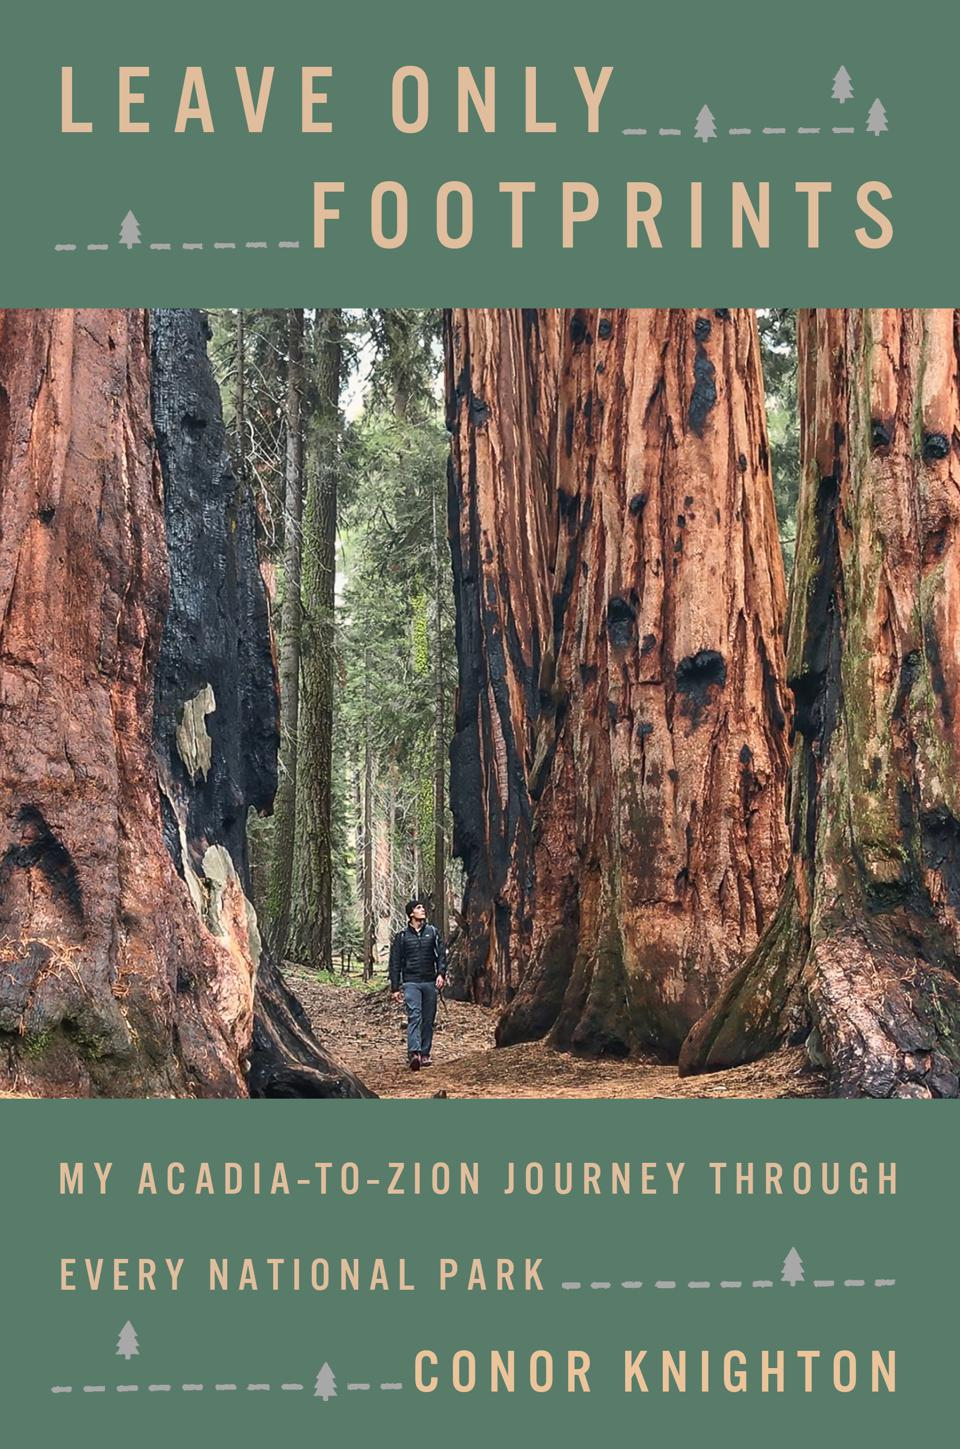 Leave Only Footprints: My Acadia-to-Zion Journey Through Every National Park Conor knighton